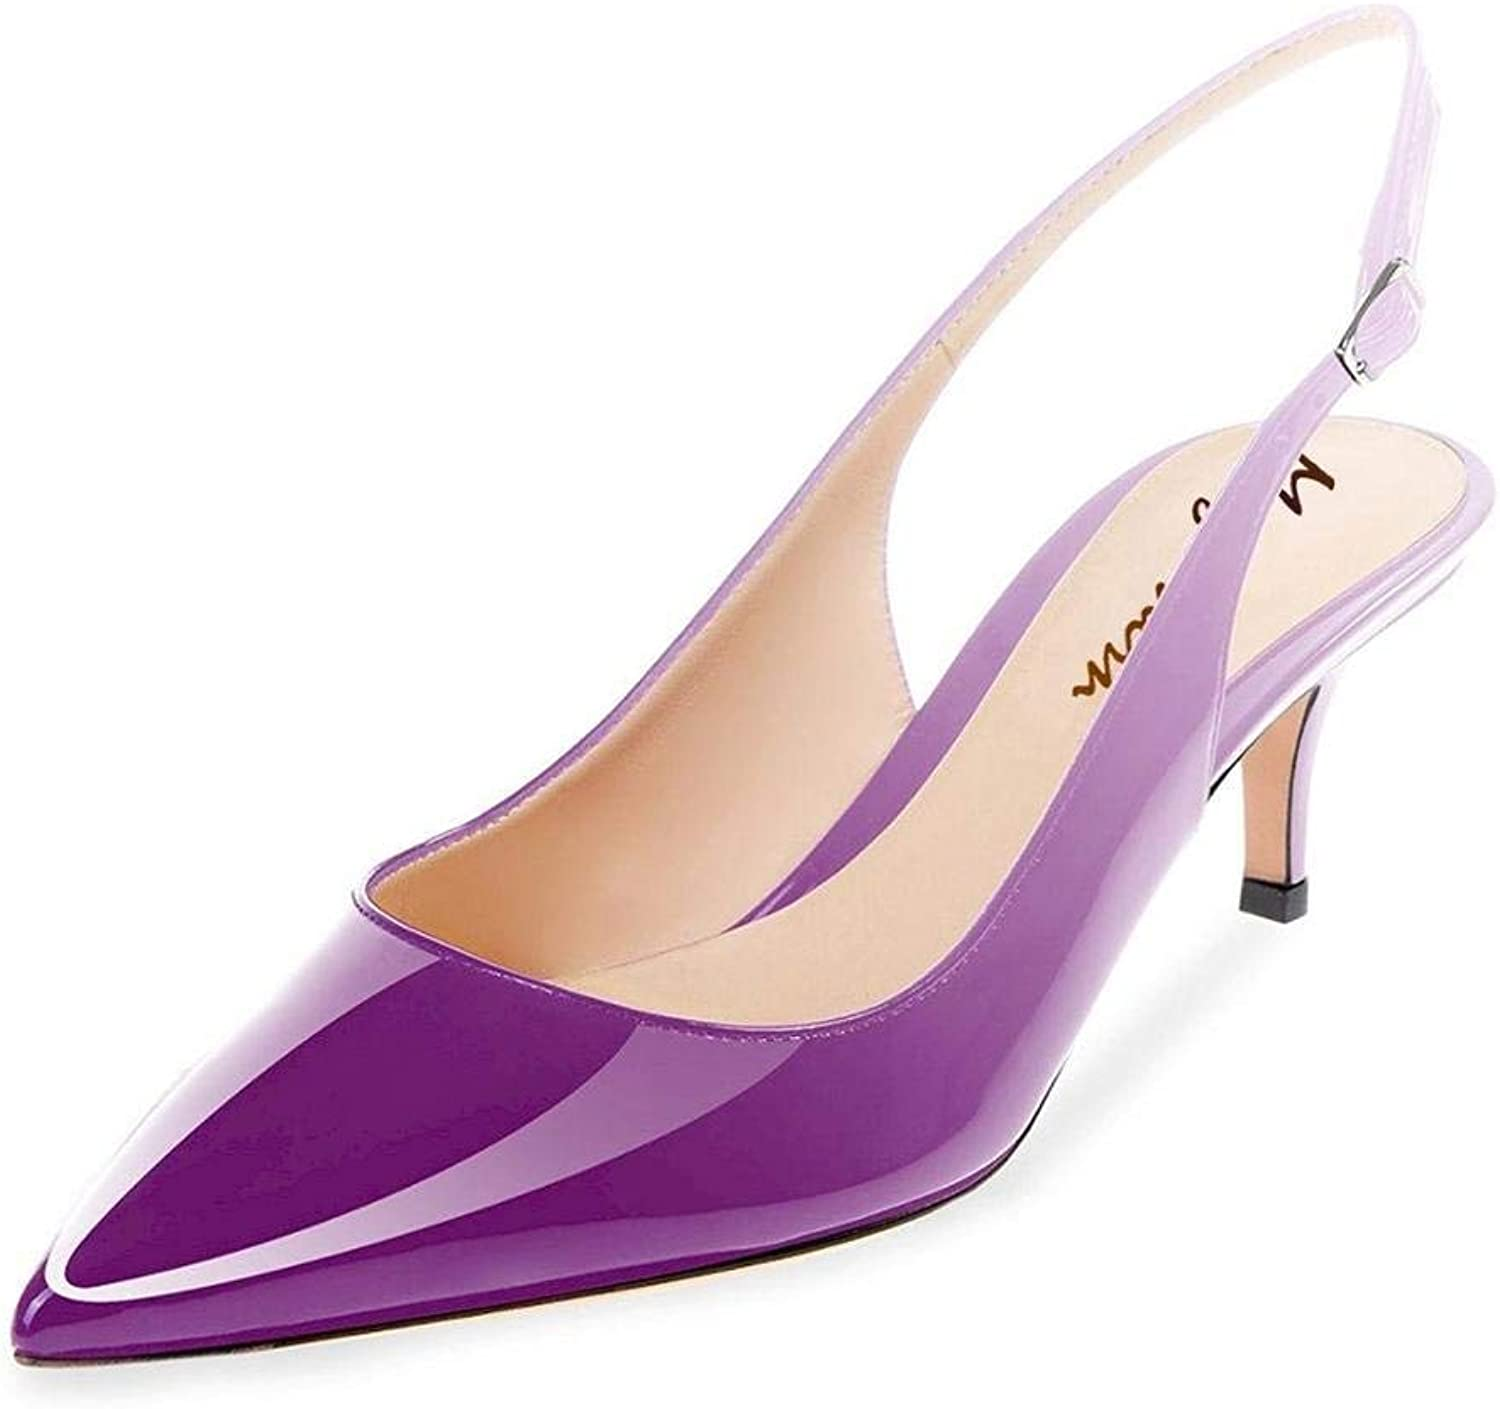 Maguidern Patent Leather Slingback Pumps, Women's Pointed Toe Slingbacks Buckle Ankle Strap Low Heel shoes Purple Size 12